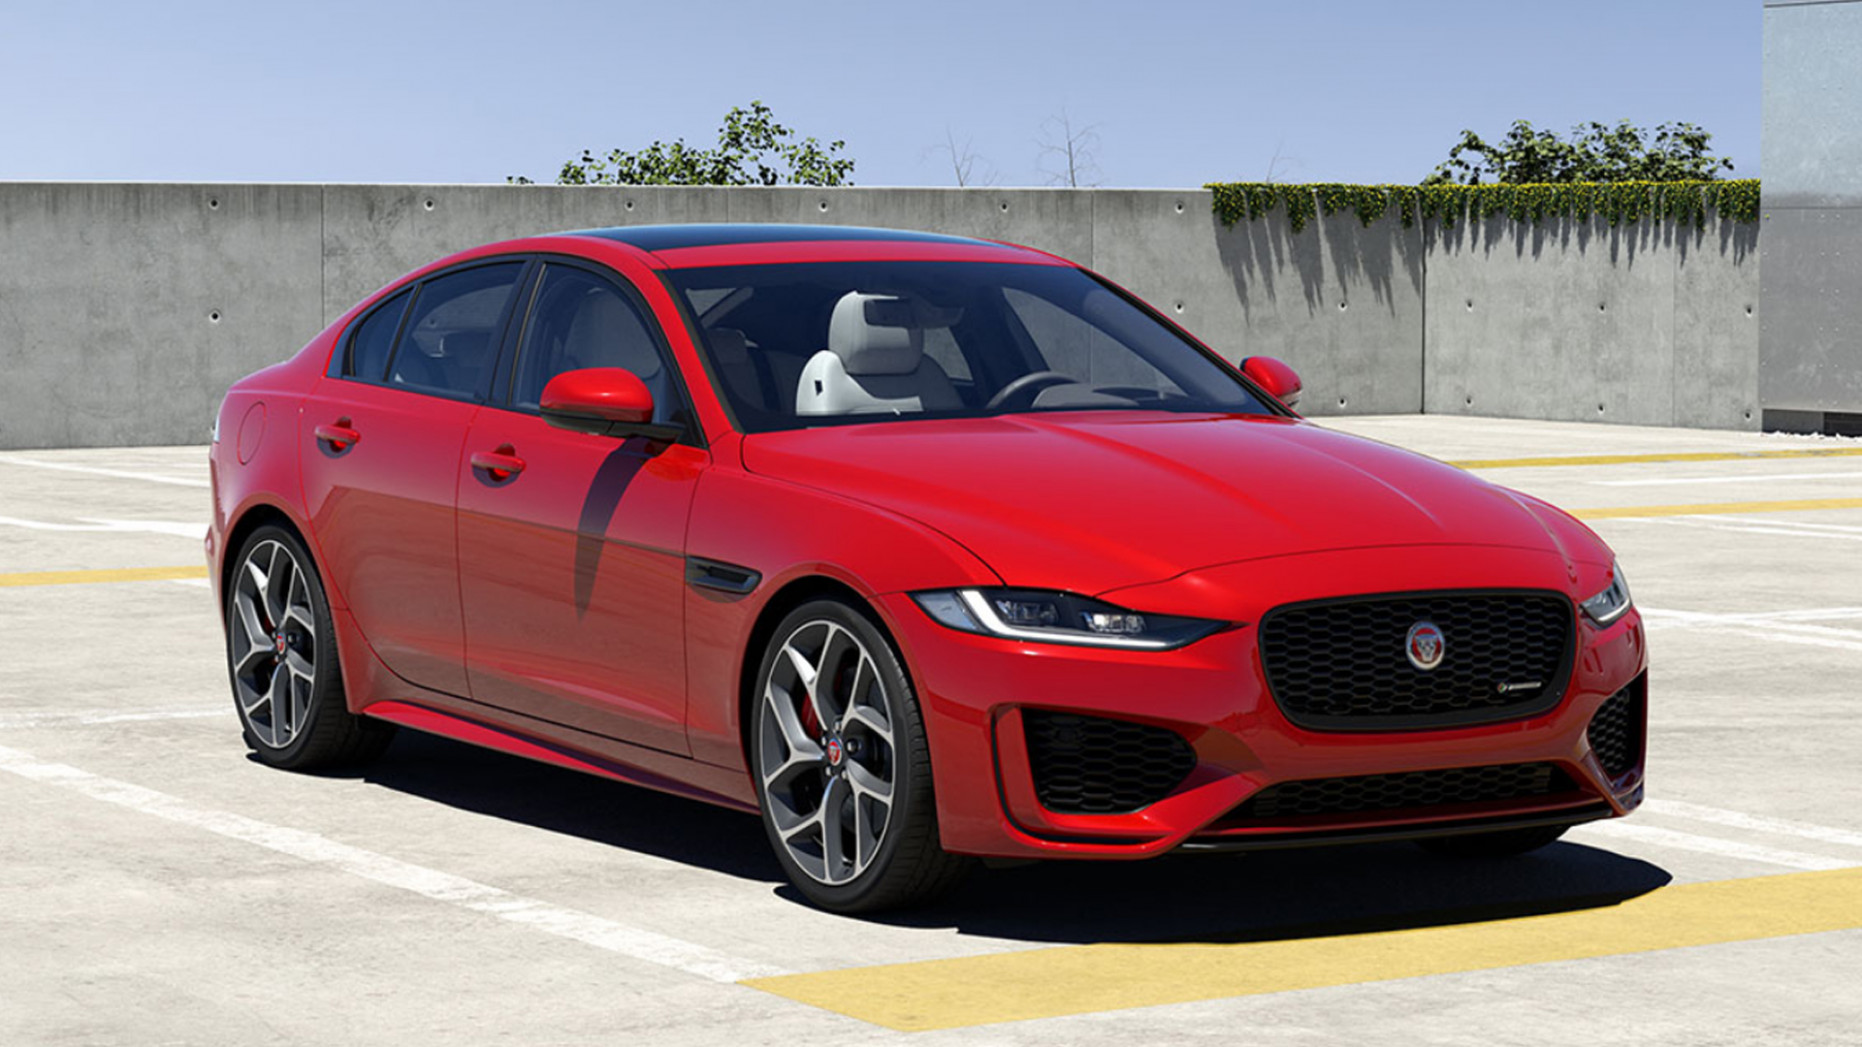 Jaguar XE 8 - Price, Mileage, Reviews, Specification, Gallery ..